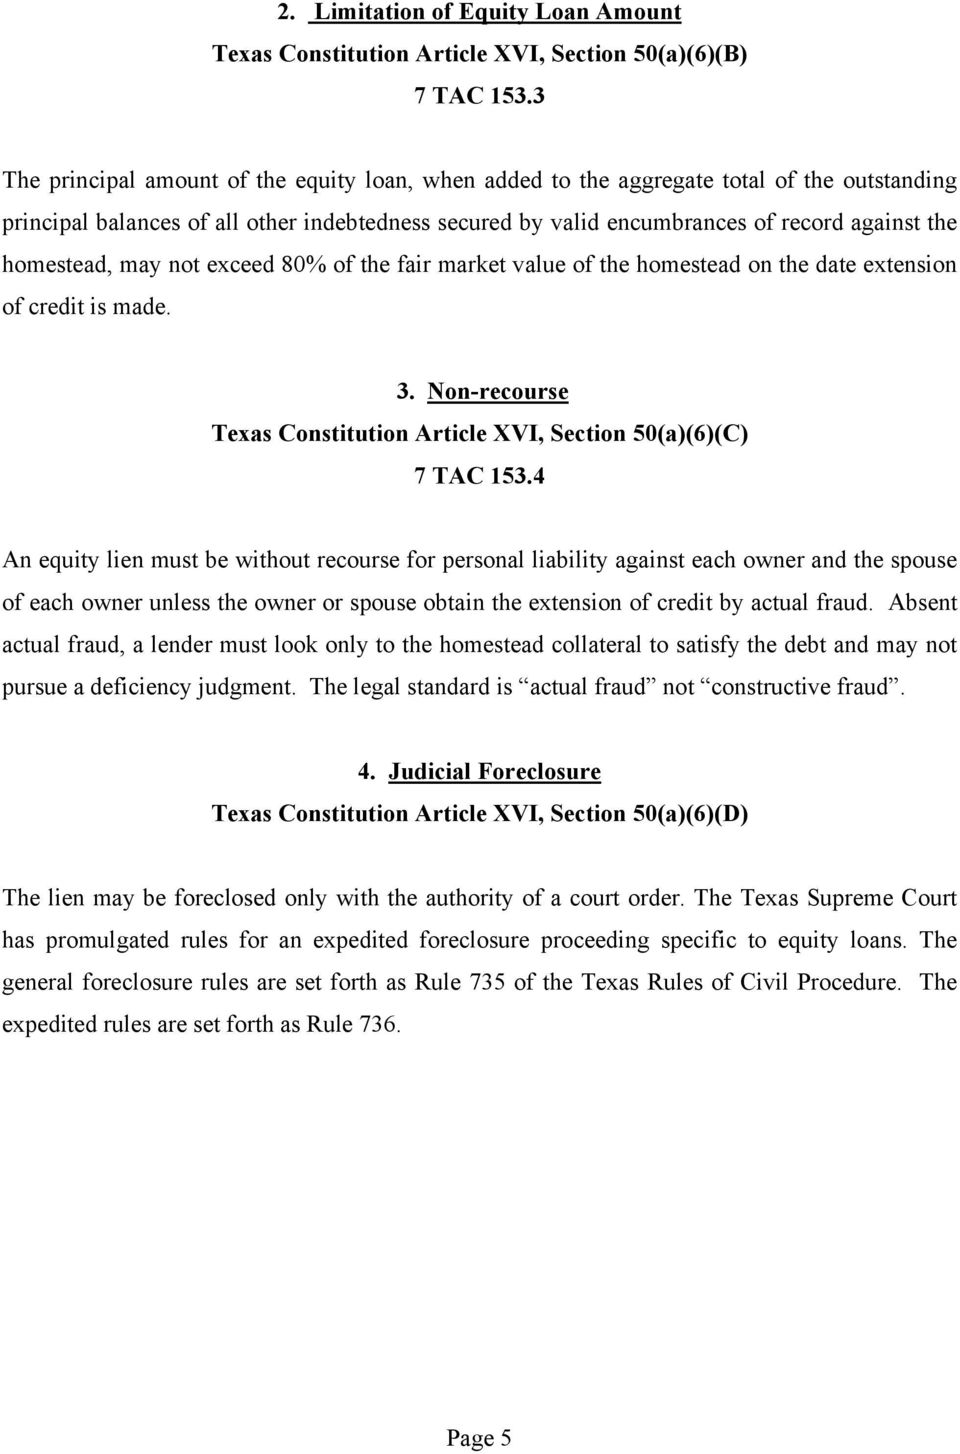 homestead, may not exceed 80% of the fair market value of the homestead on the date extension of credit is made. 3. Non-recourse Texas Constitution Article XVI, Section 50(a)(6)(C) 7 TAC 153.